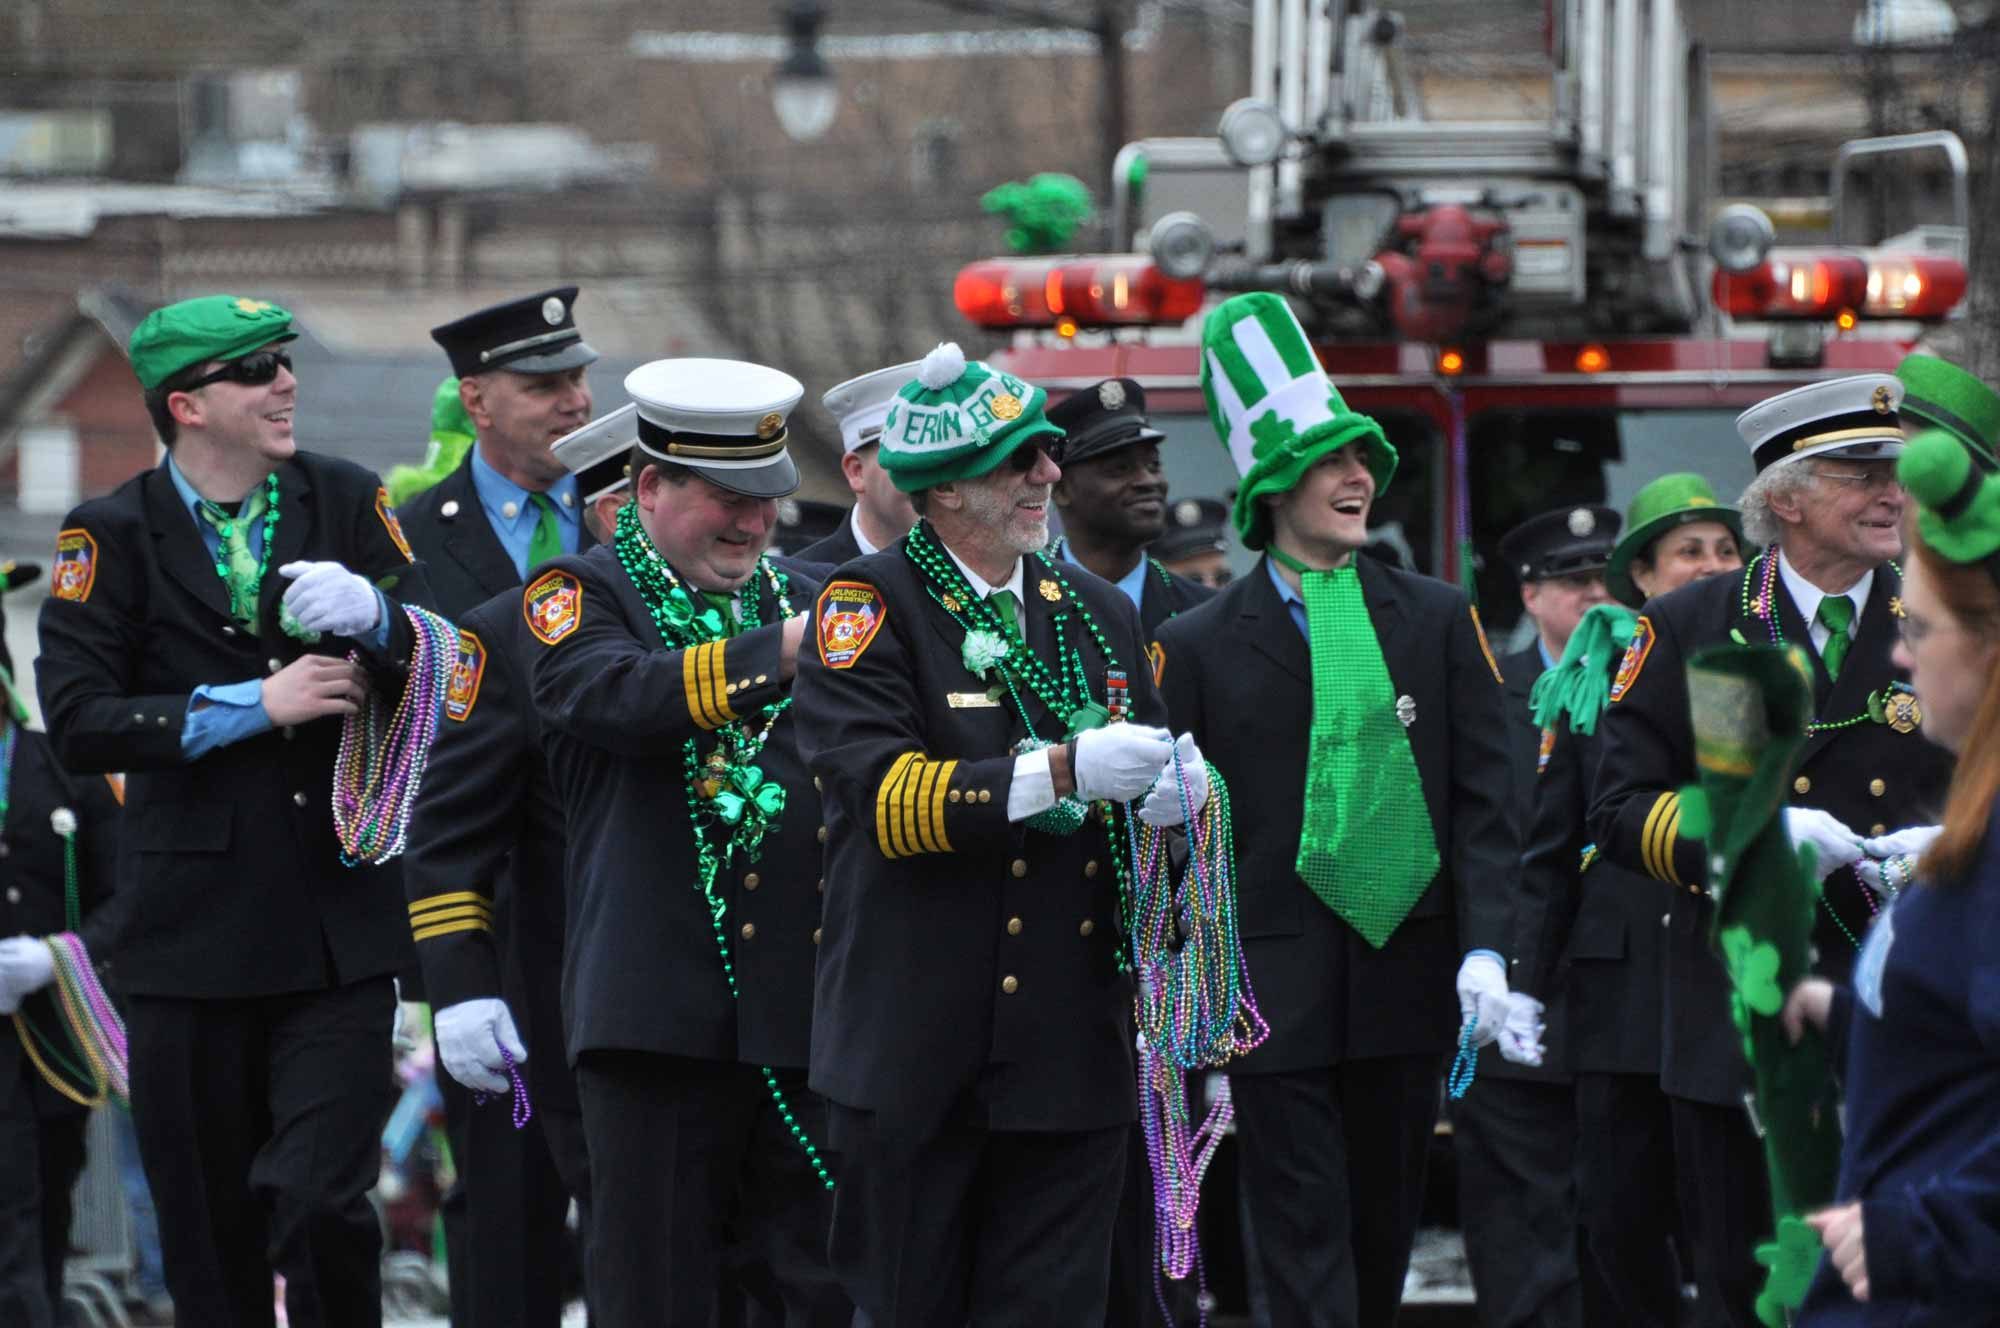 St. Patrick's Day - New York